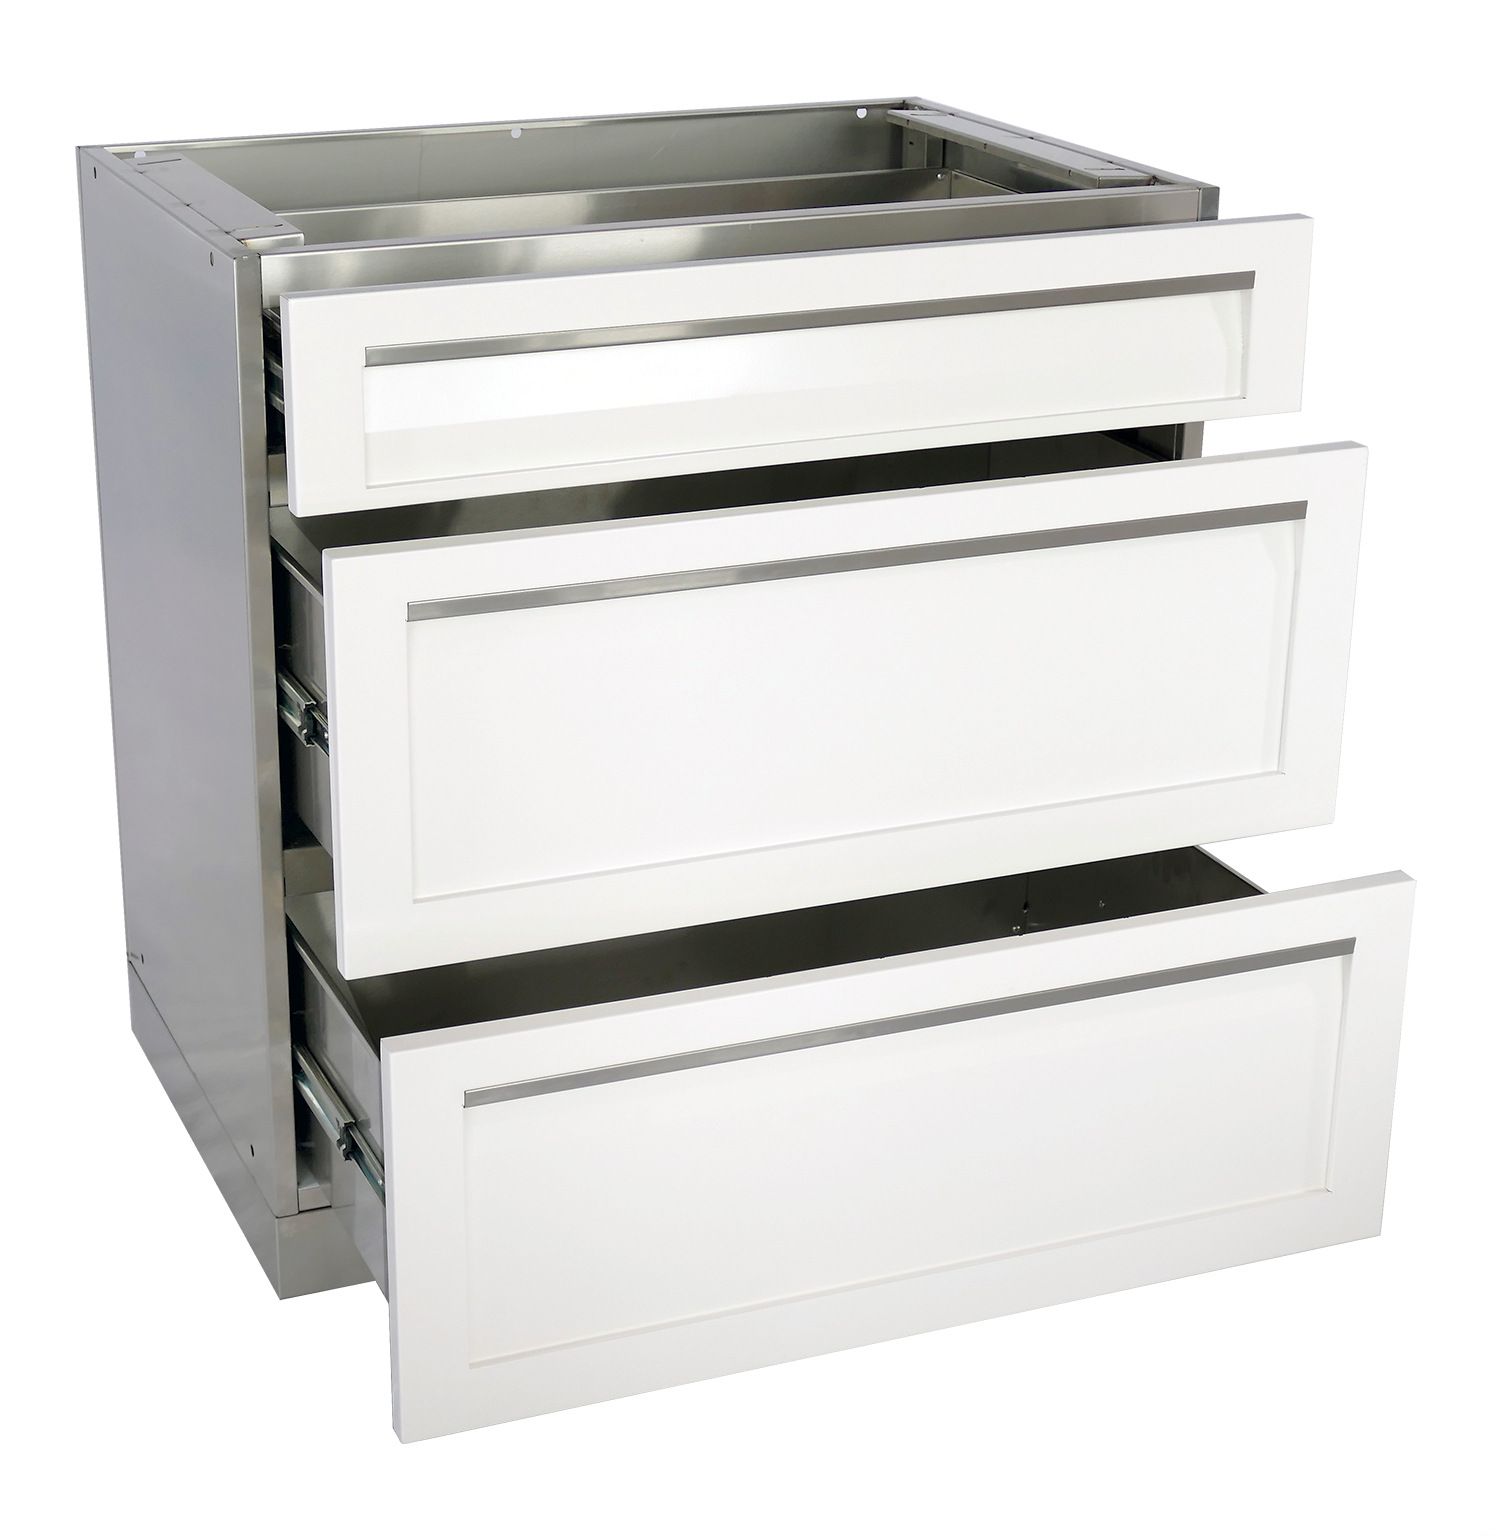 w40003 - 3 Drawer open 1500